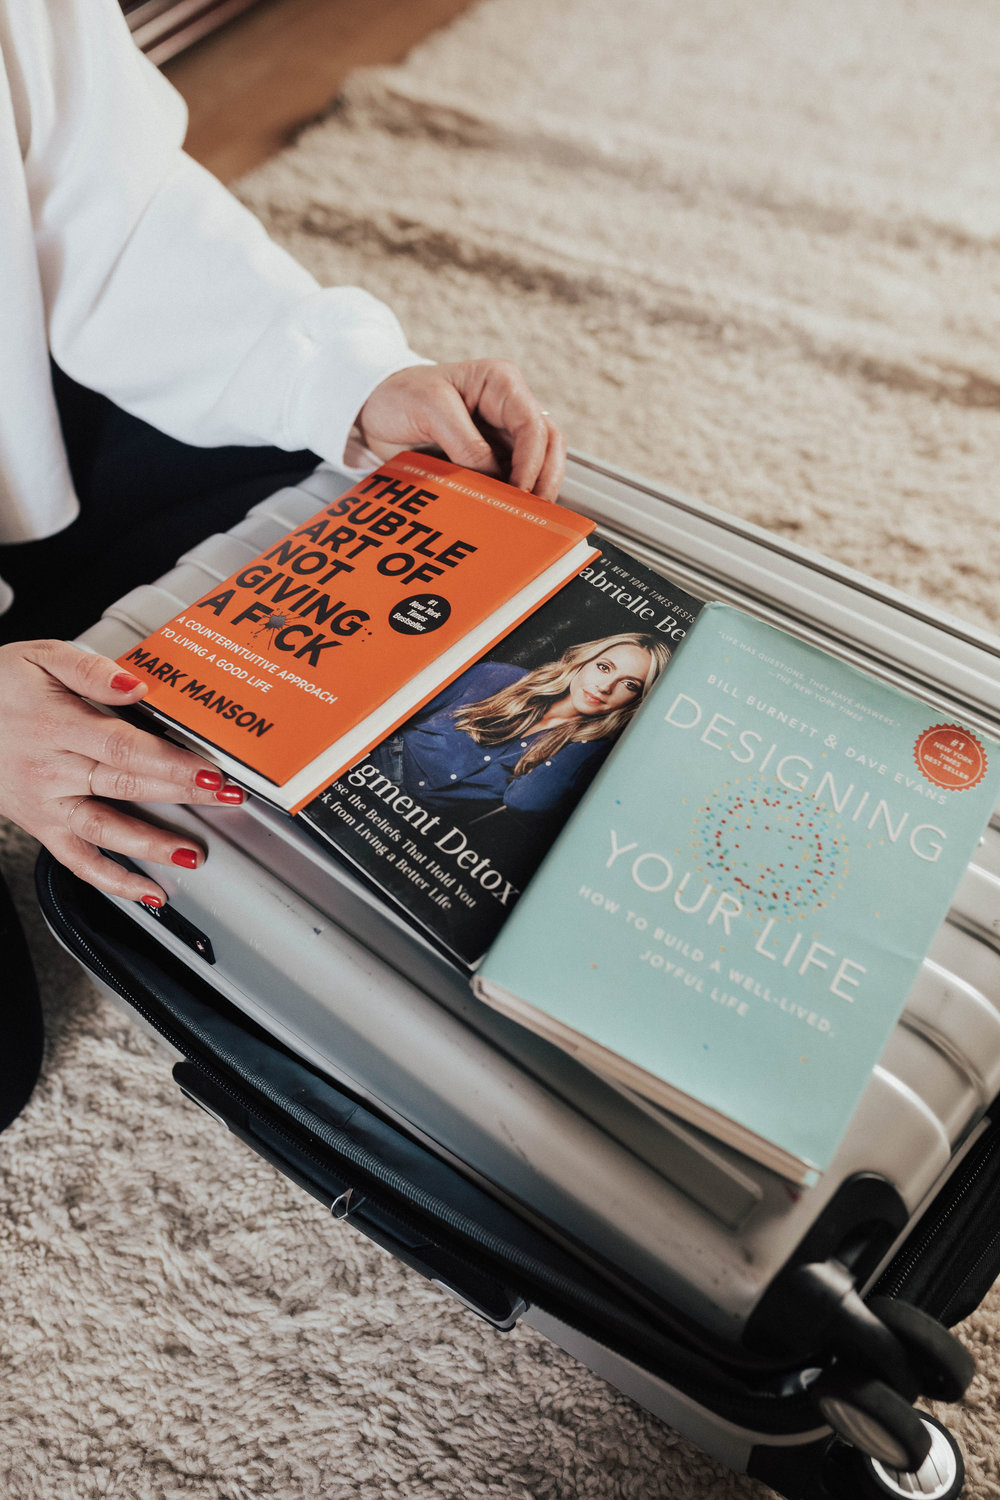 via thea favorite books every boss babe needs to read